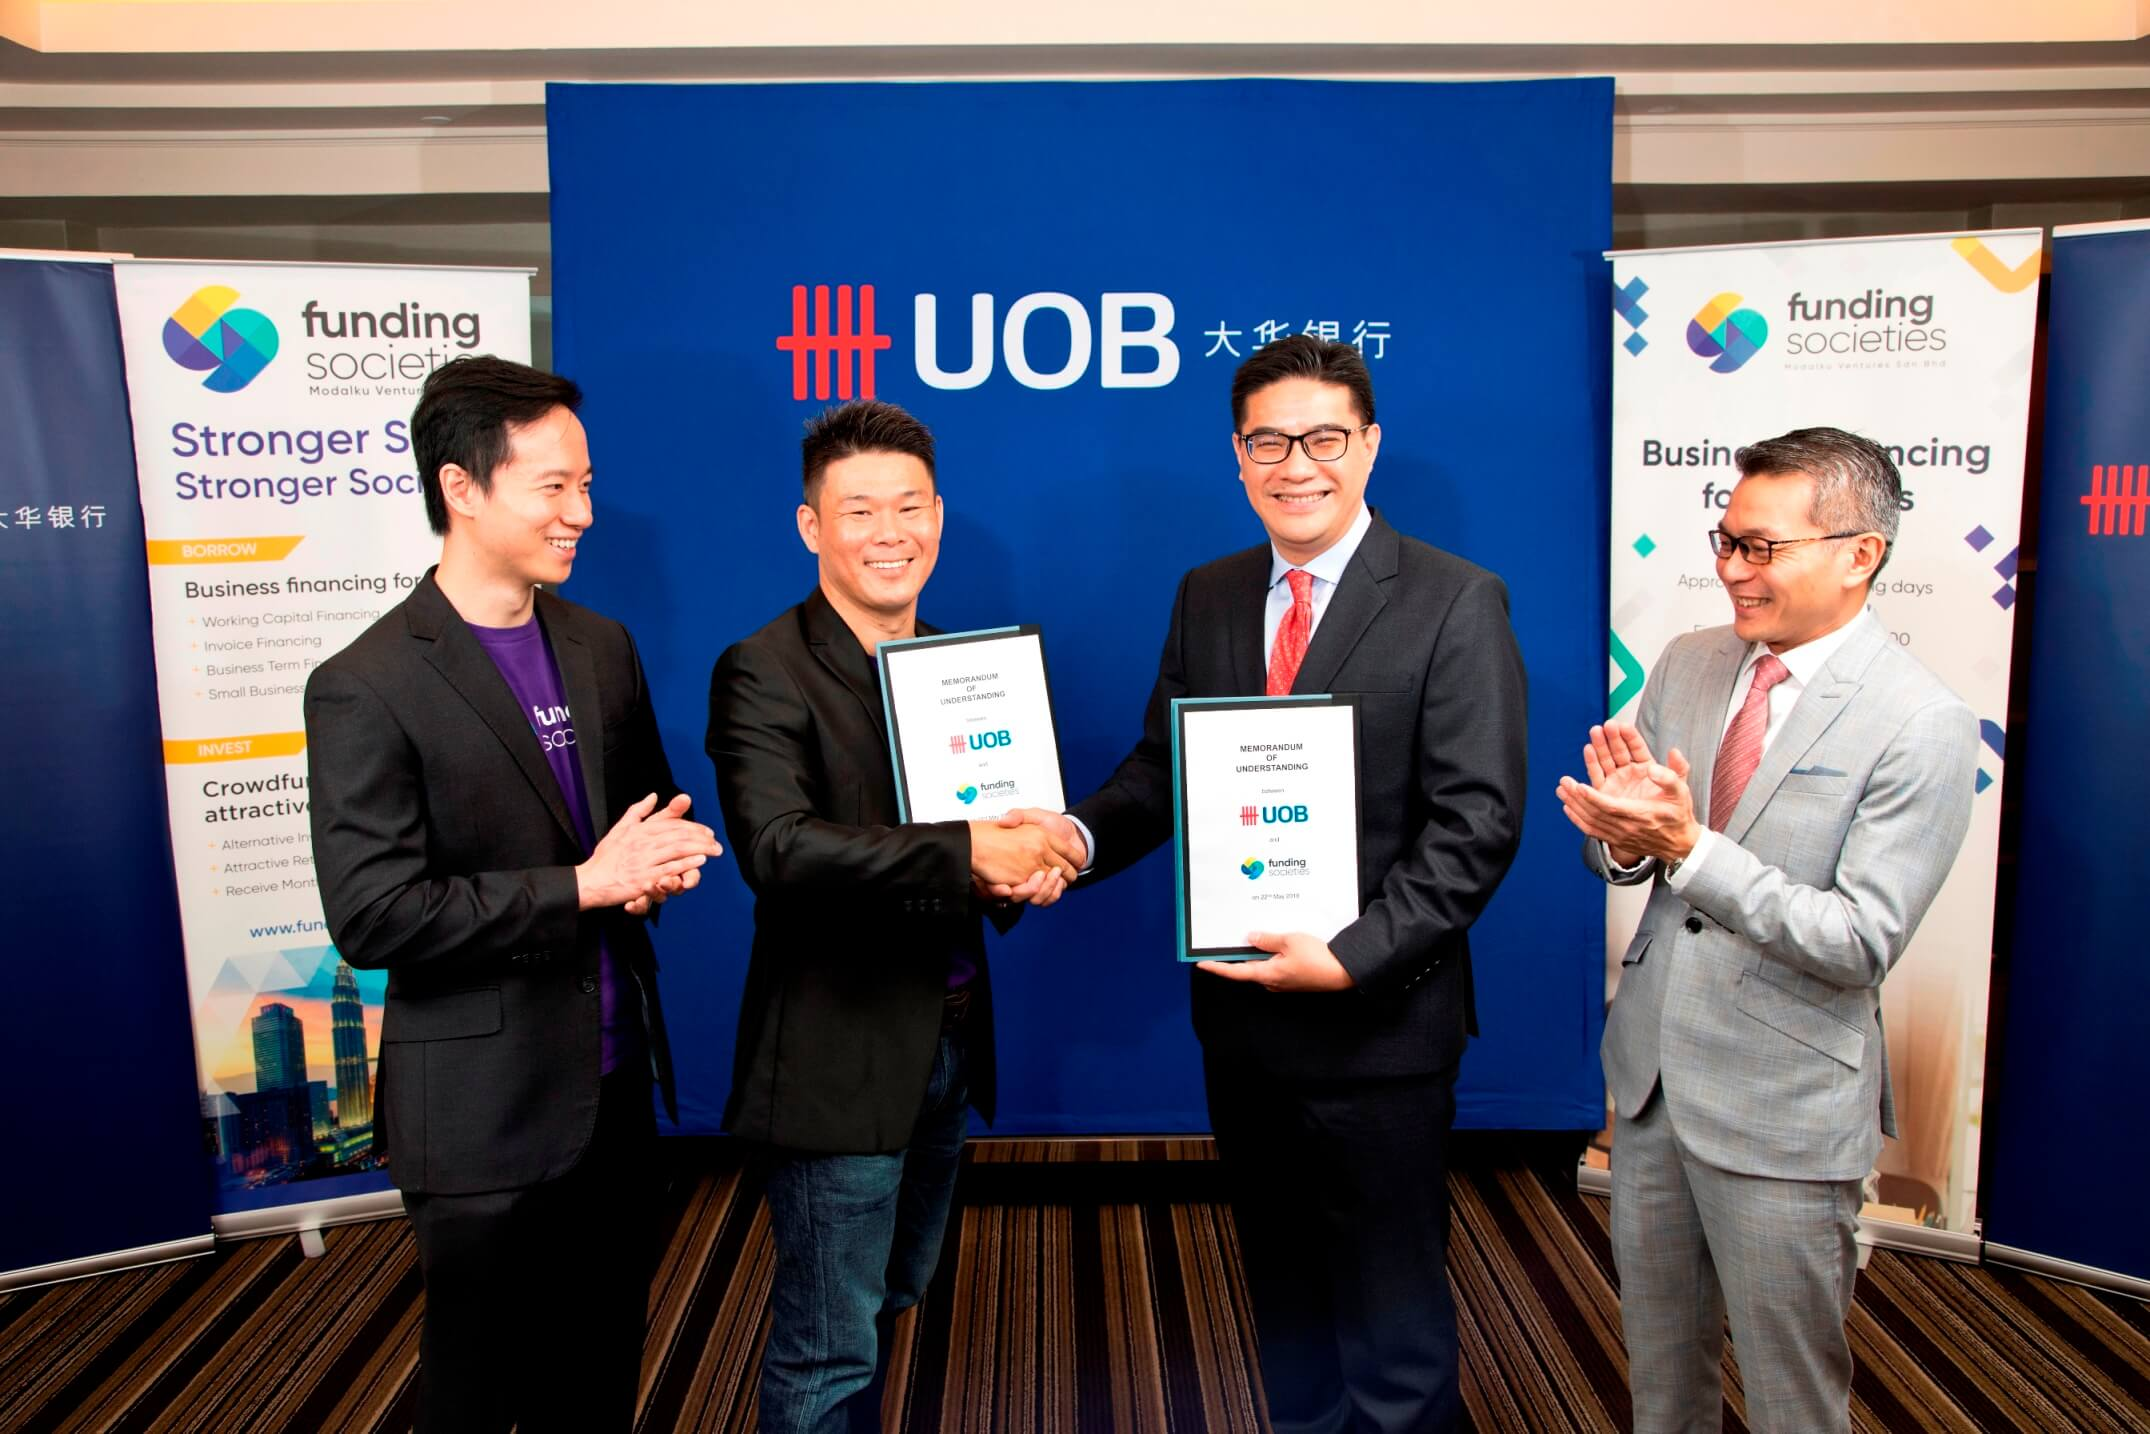 UOB and Funding Societies signed an agreement for partnership